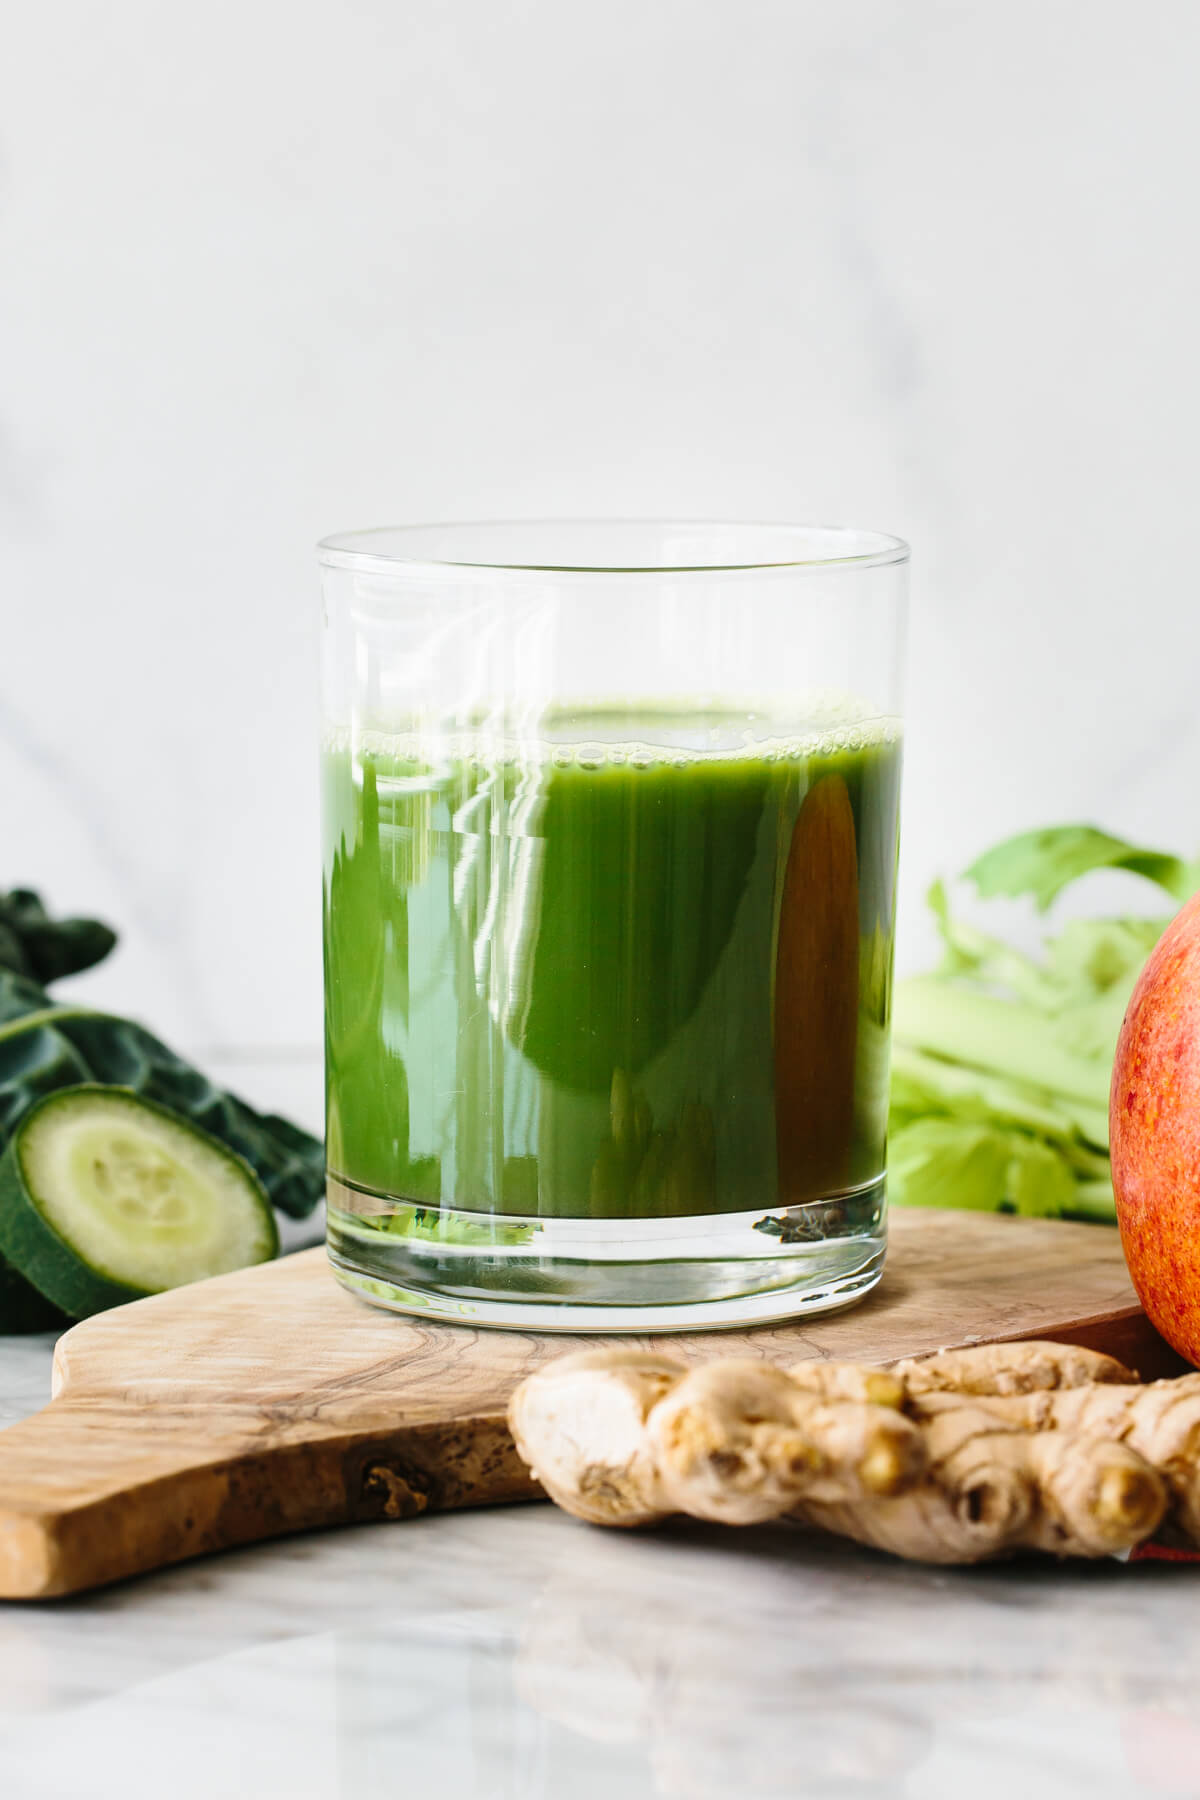 A glass of green juice, surrounded by vegetables.